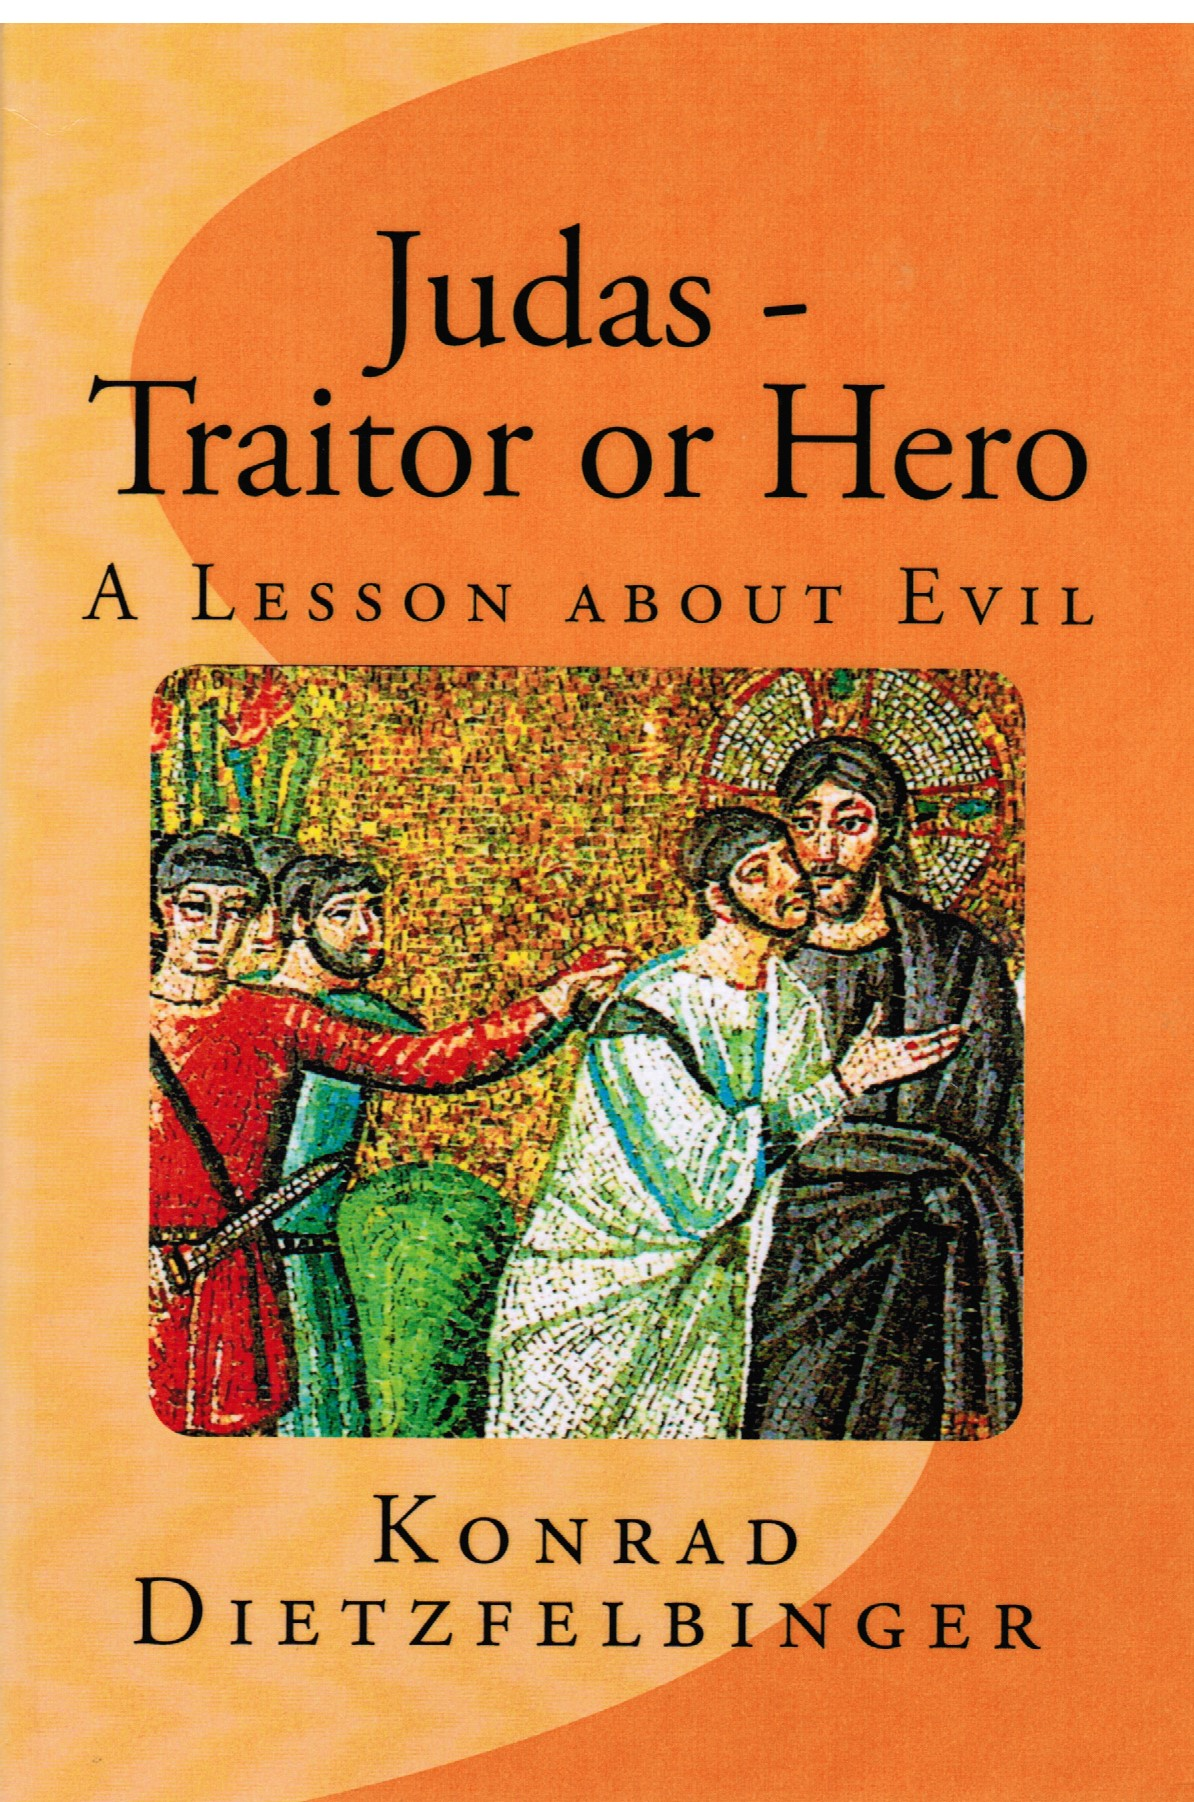 Judas - Traitor or Hero: A Lesson about Evil (Engl